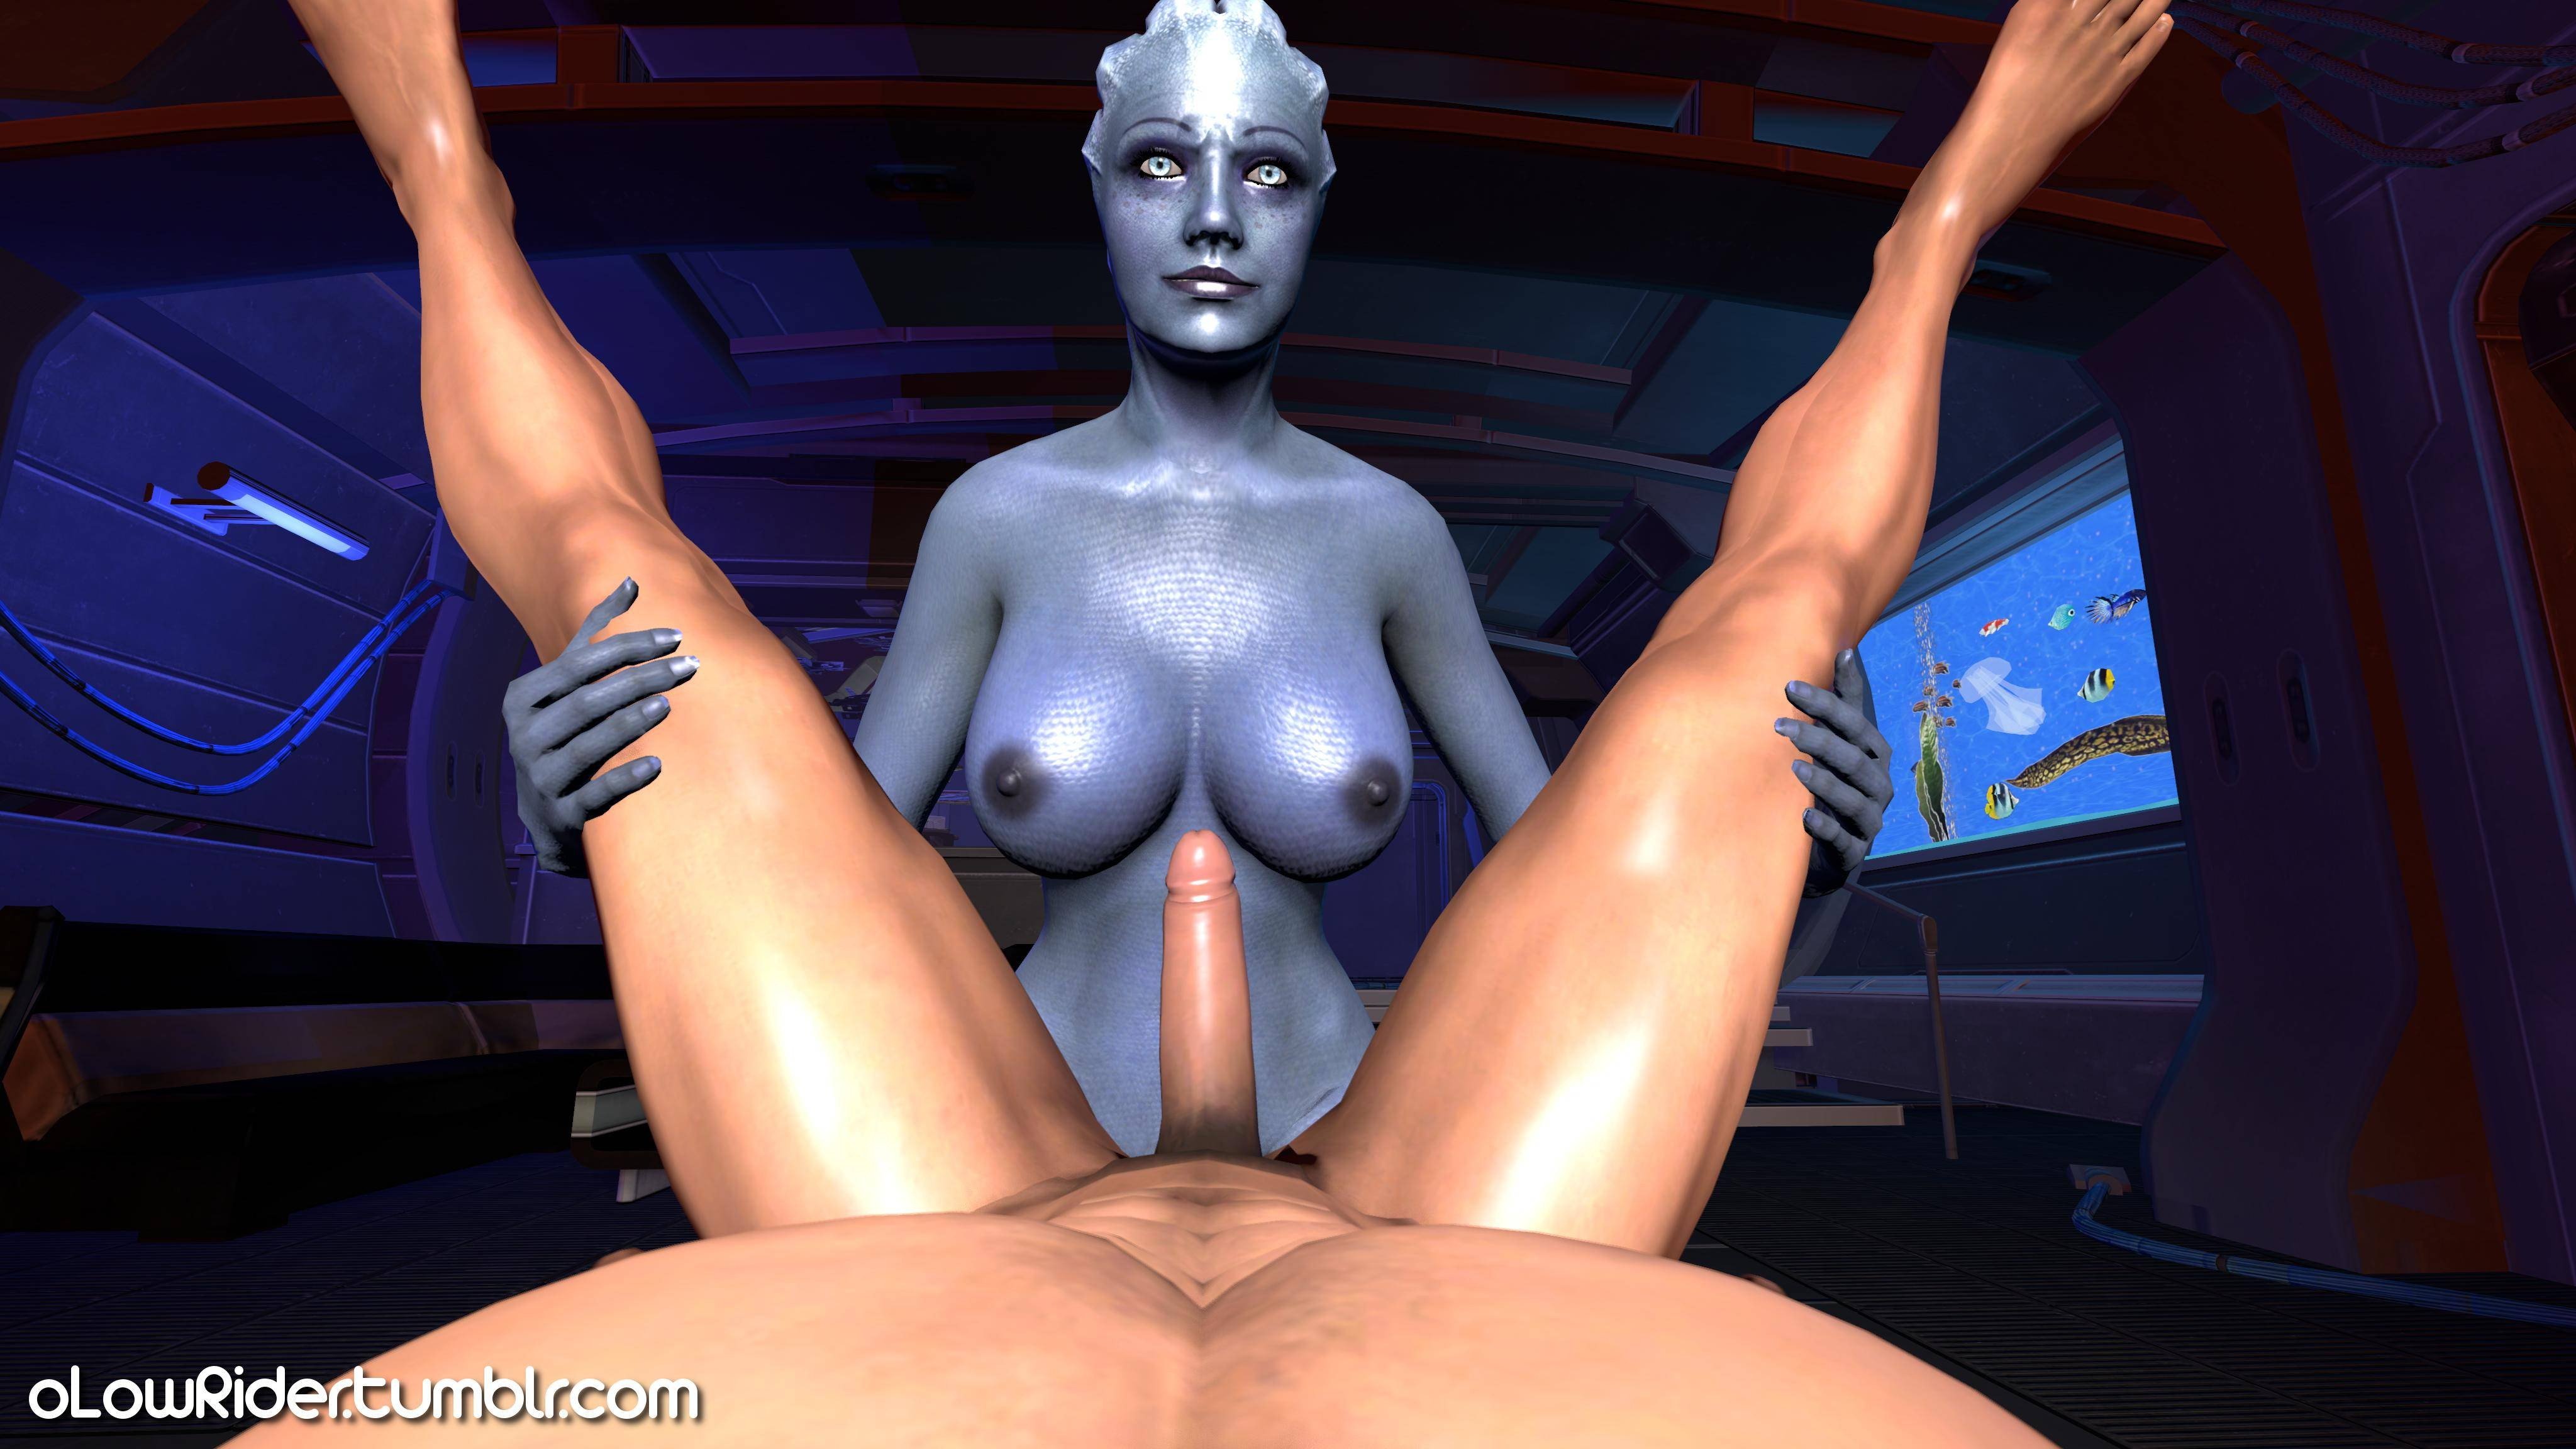 Mass effect porn shrek adult movies